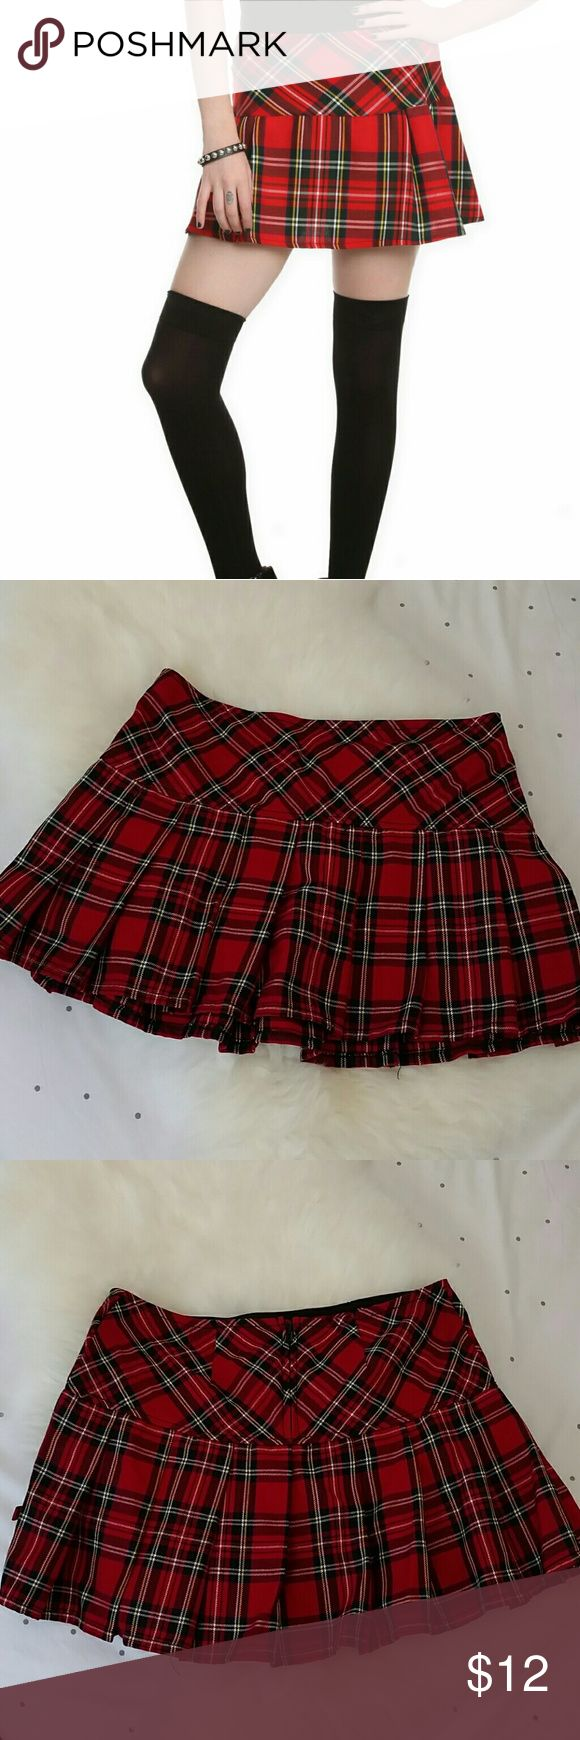 """Royal Bones Hot Topic Plaid Mini Skirt S Bought for a Halloween costume, only worn once. Perfect condition. Worn low on hips. Measures 15"""" across. 13"""" length Hot Topic Skirts Mini"""